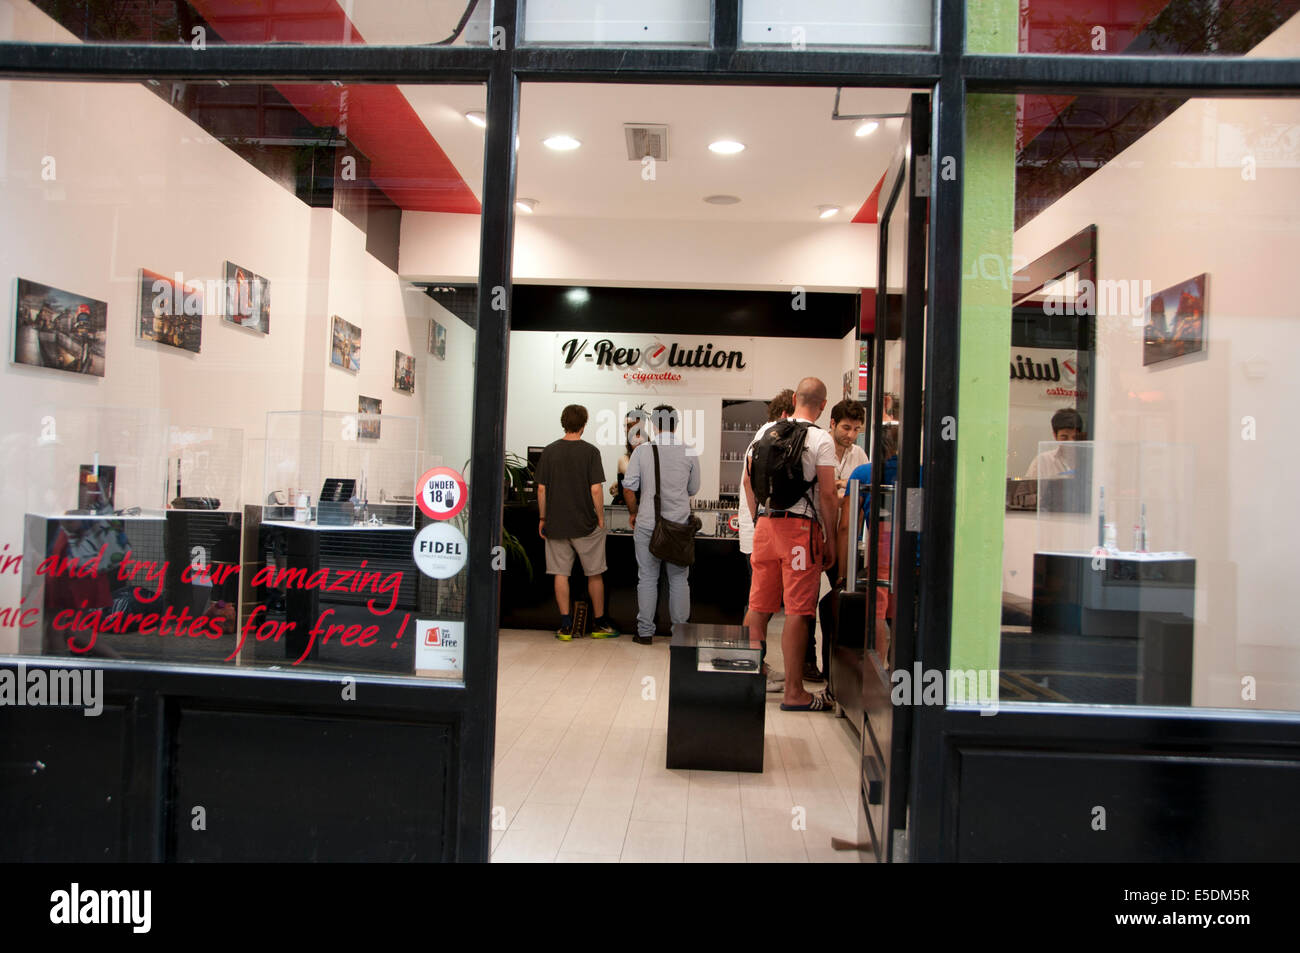 London July 2014. Covent Garden. E cigarette shop called V-revolution - Stock Image